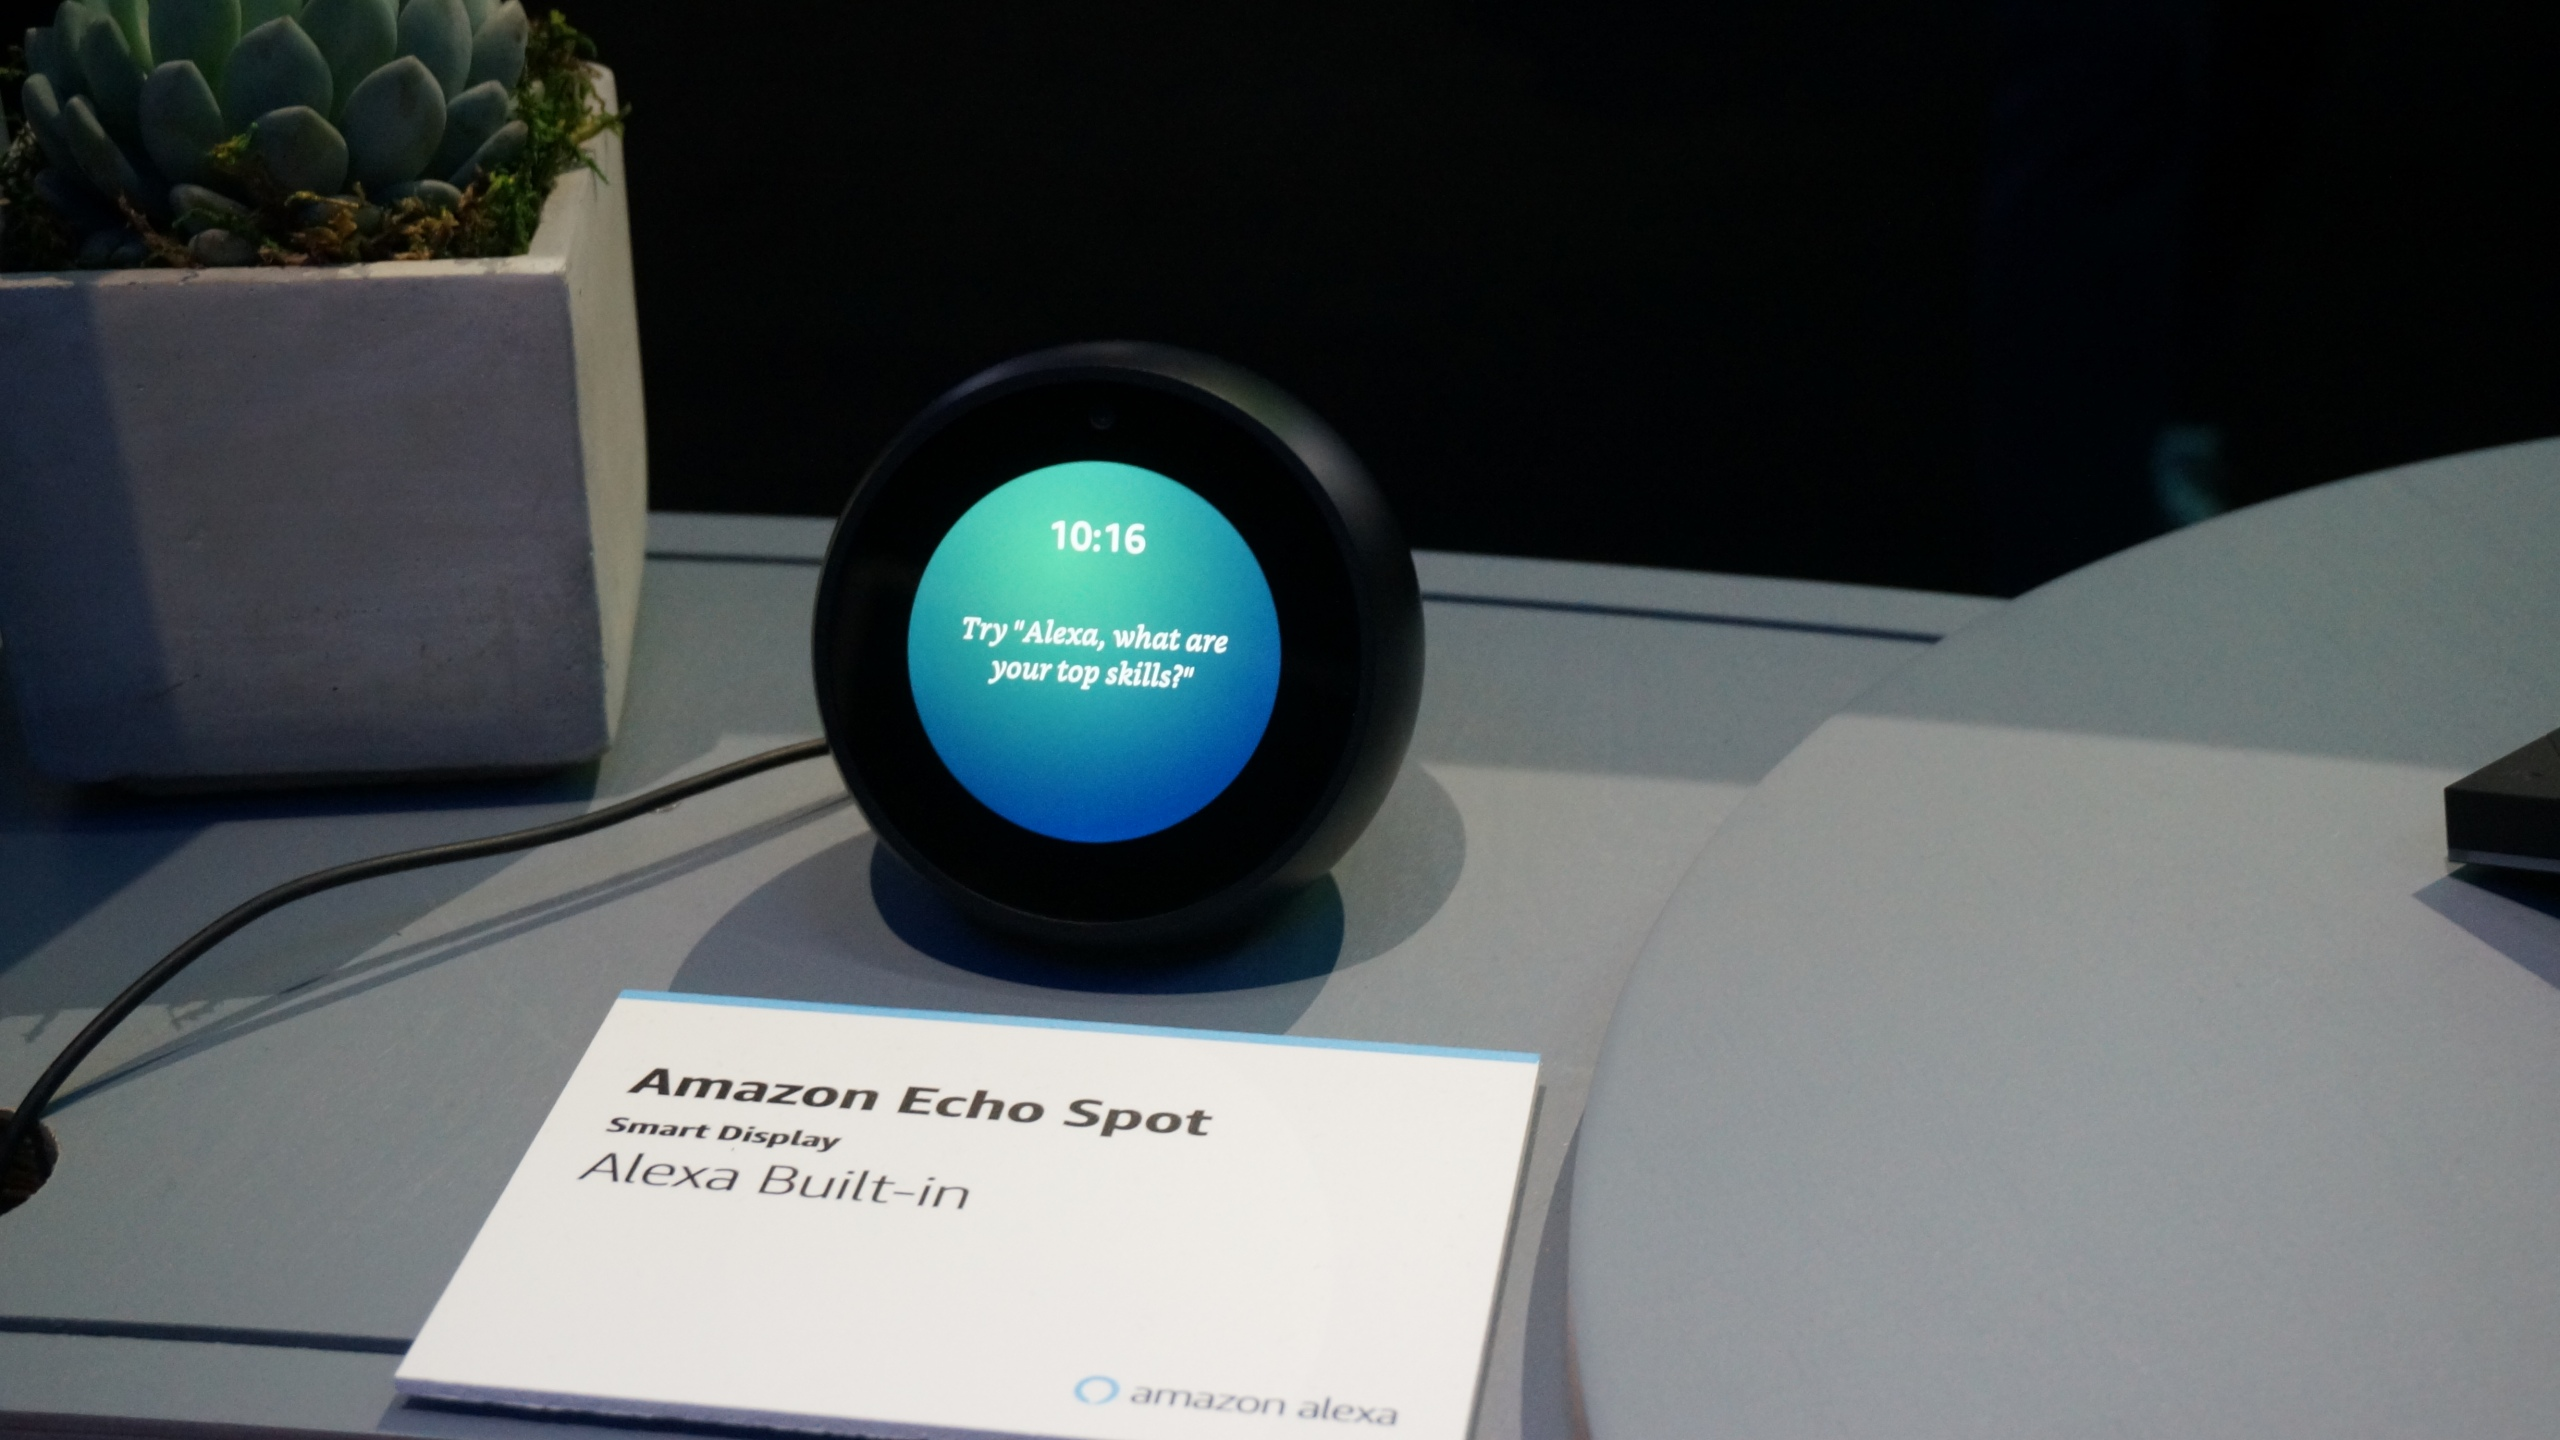 Amazon's Echo Spot device powered by its Alexa digital assistant is seen at the Consumer Electronics Show in Las Vegas on Jan. 11, 2019. (Credit: Robert Lever / AFP / Getty Images)